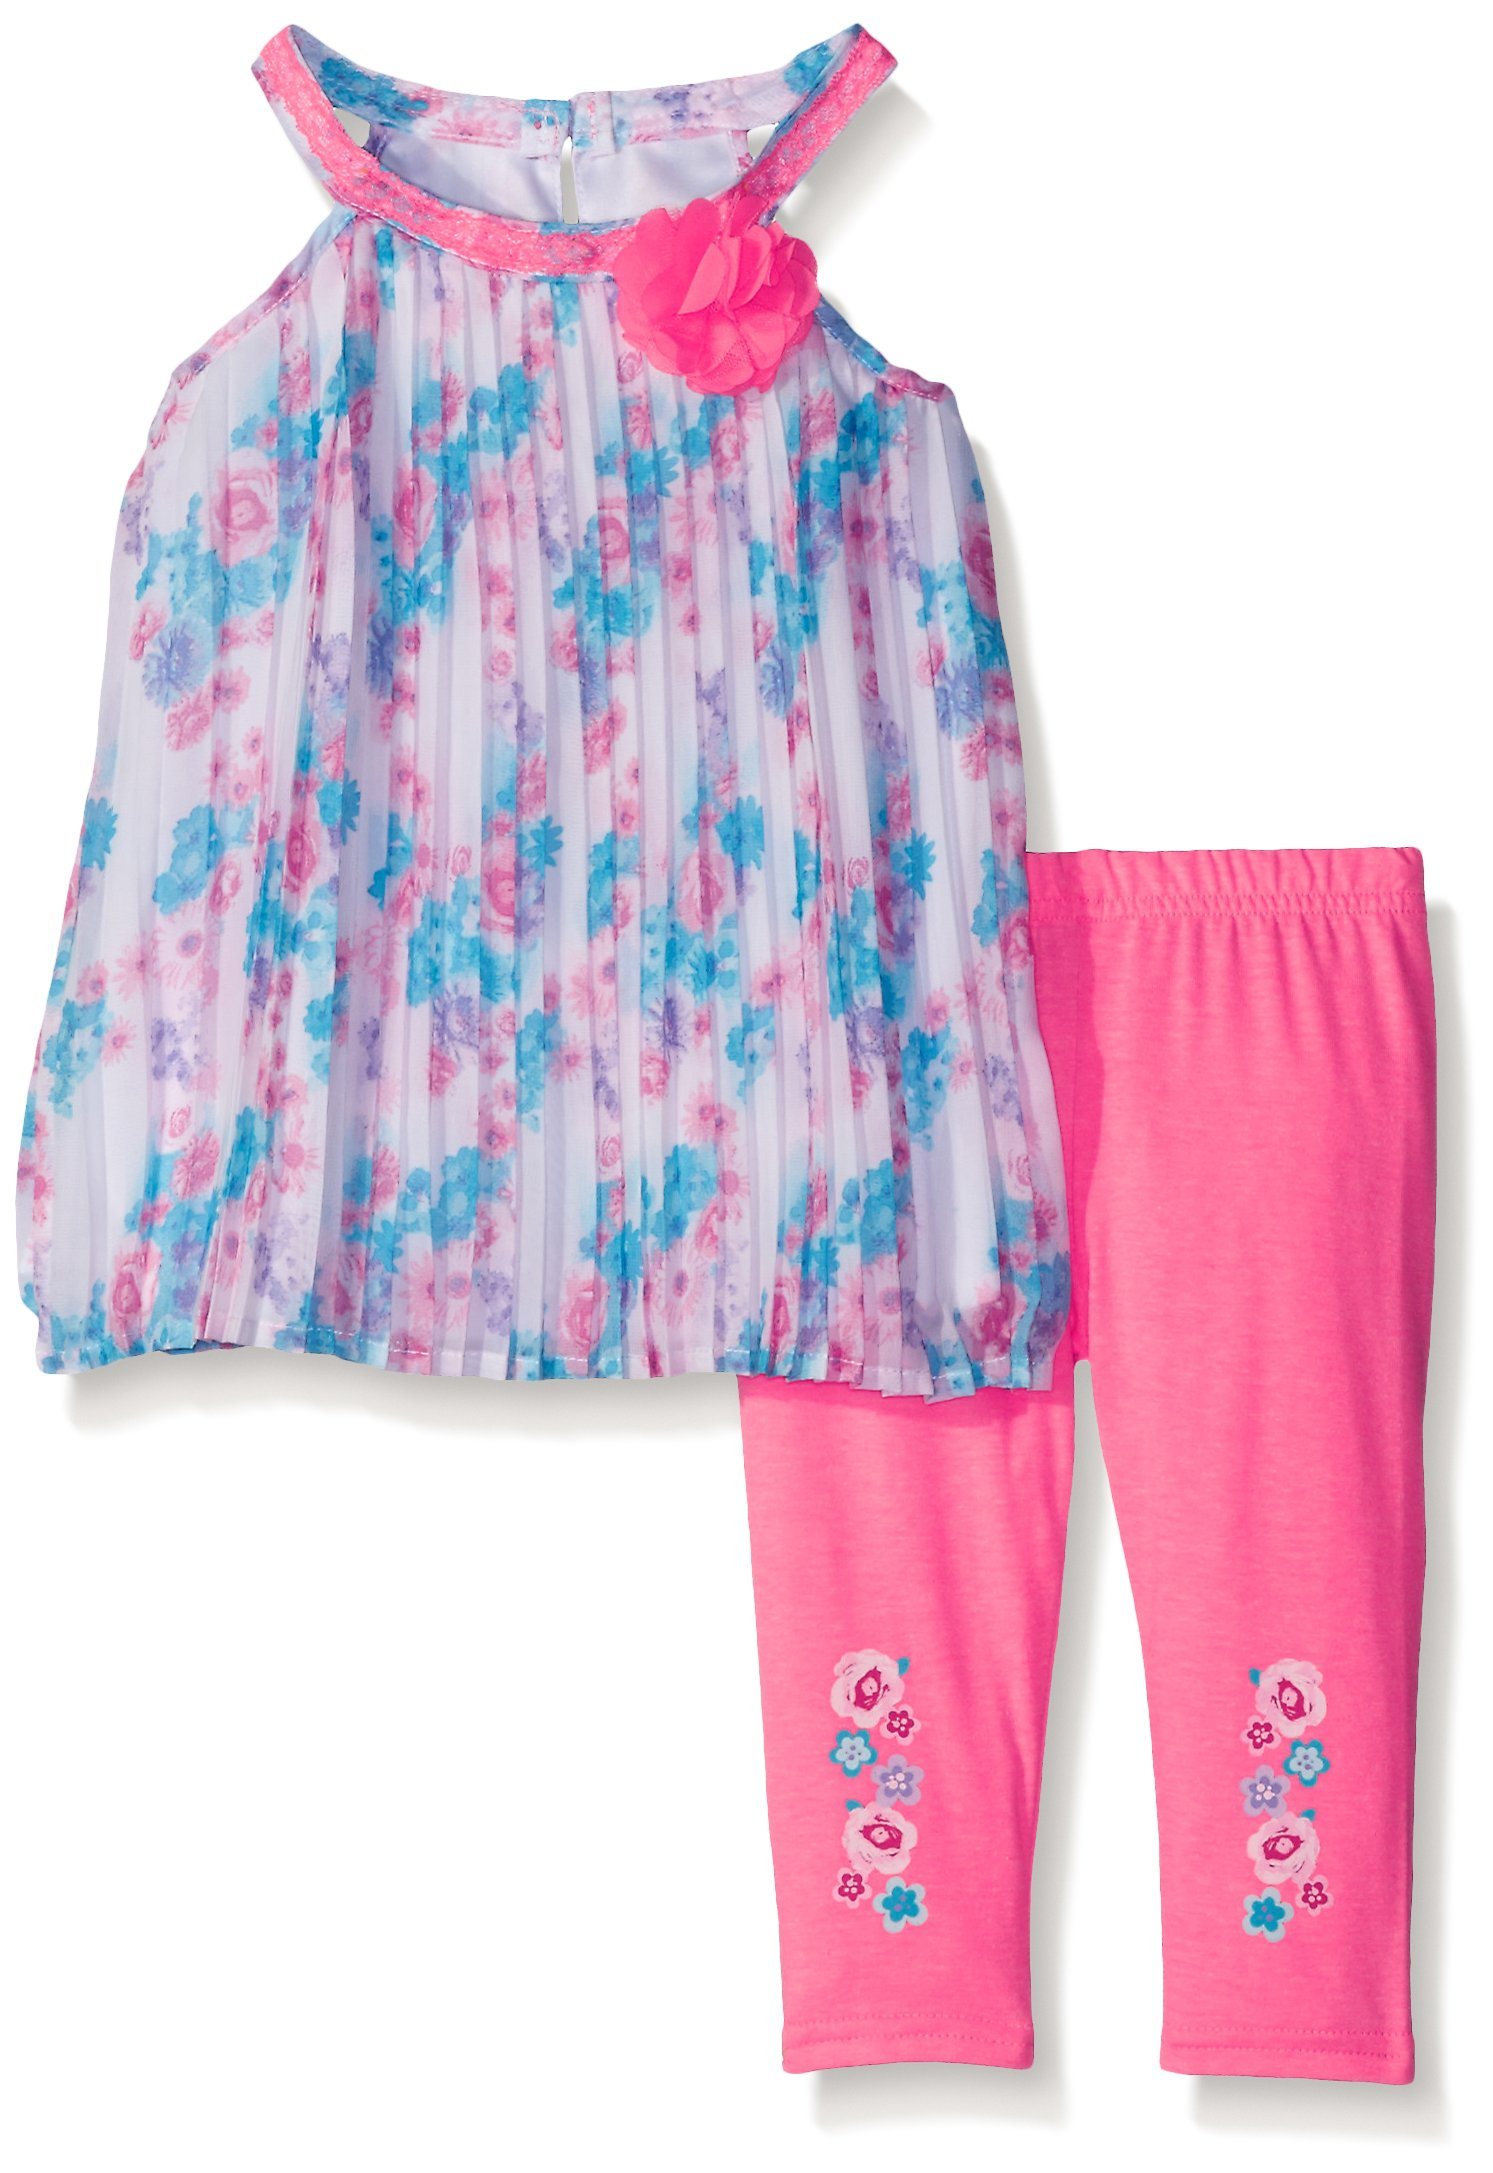 Nannette Little Girls' Toddler 2 Piece Printed Pleated Chiffon Legging Set, Pink, 4T